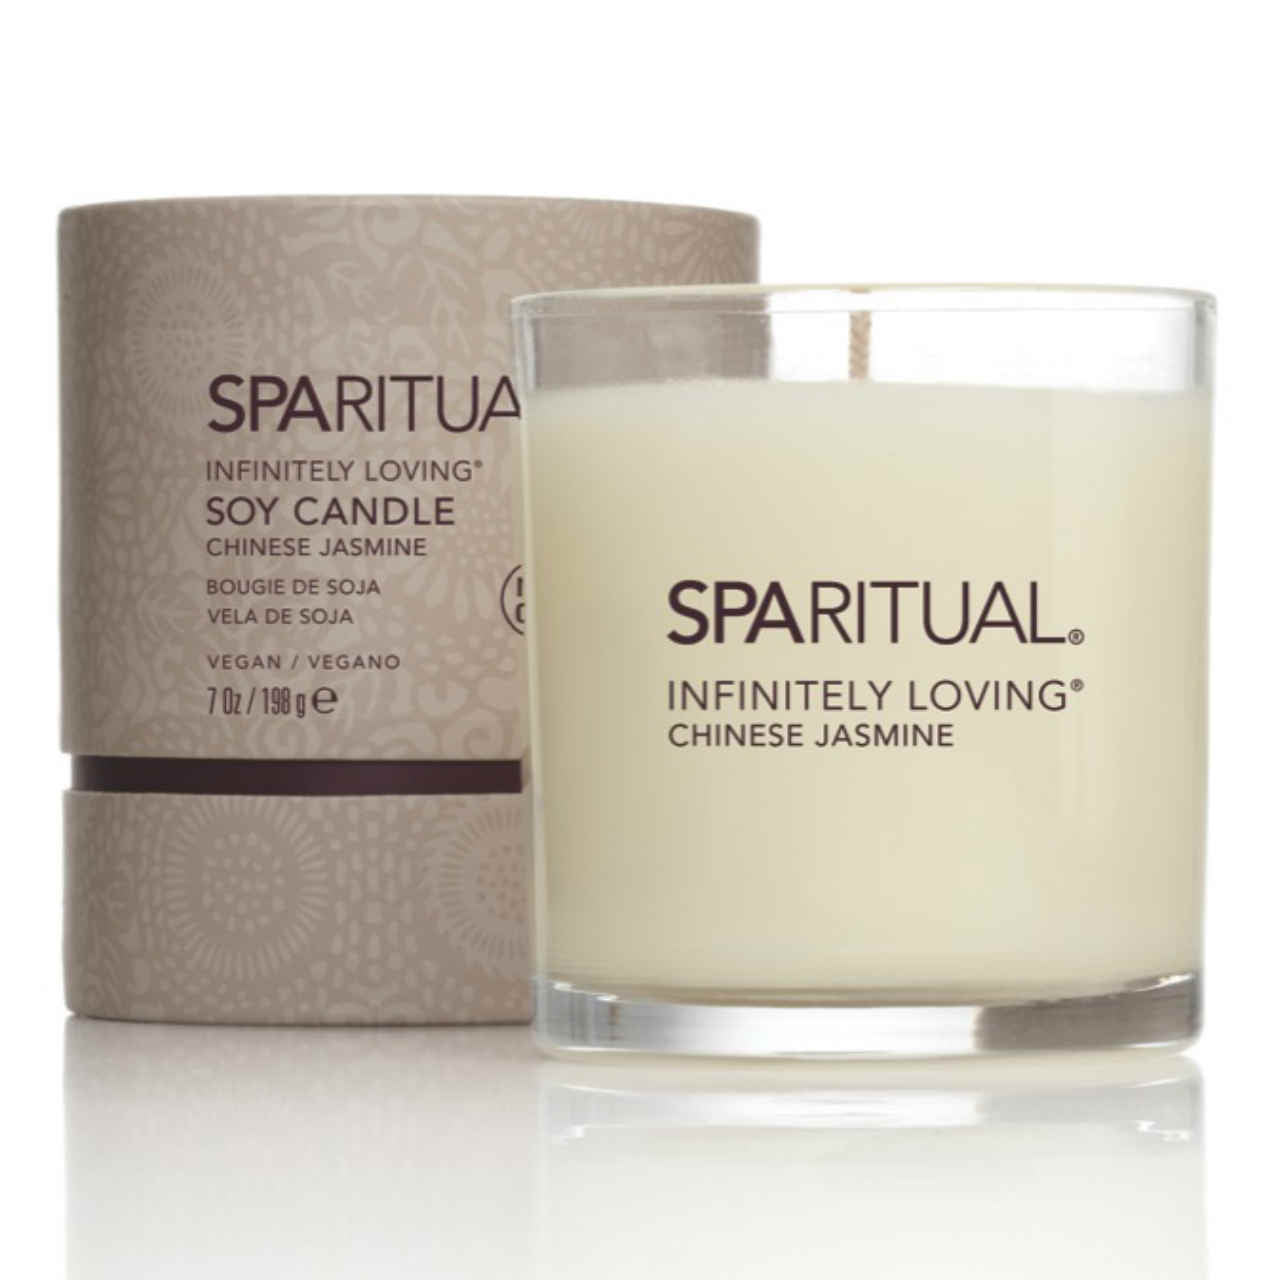 SPARITUAL Infinitely Loving® Soy Candle